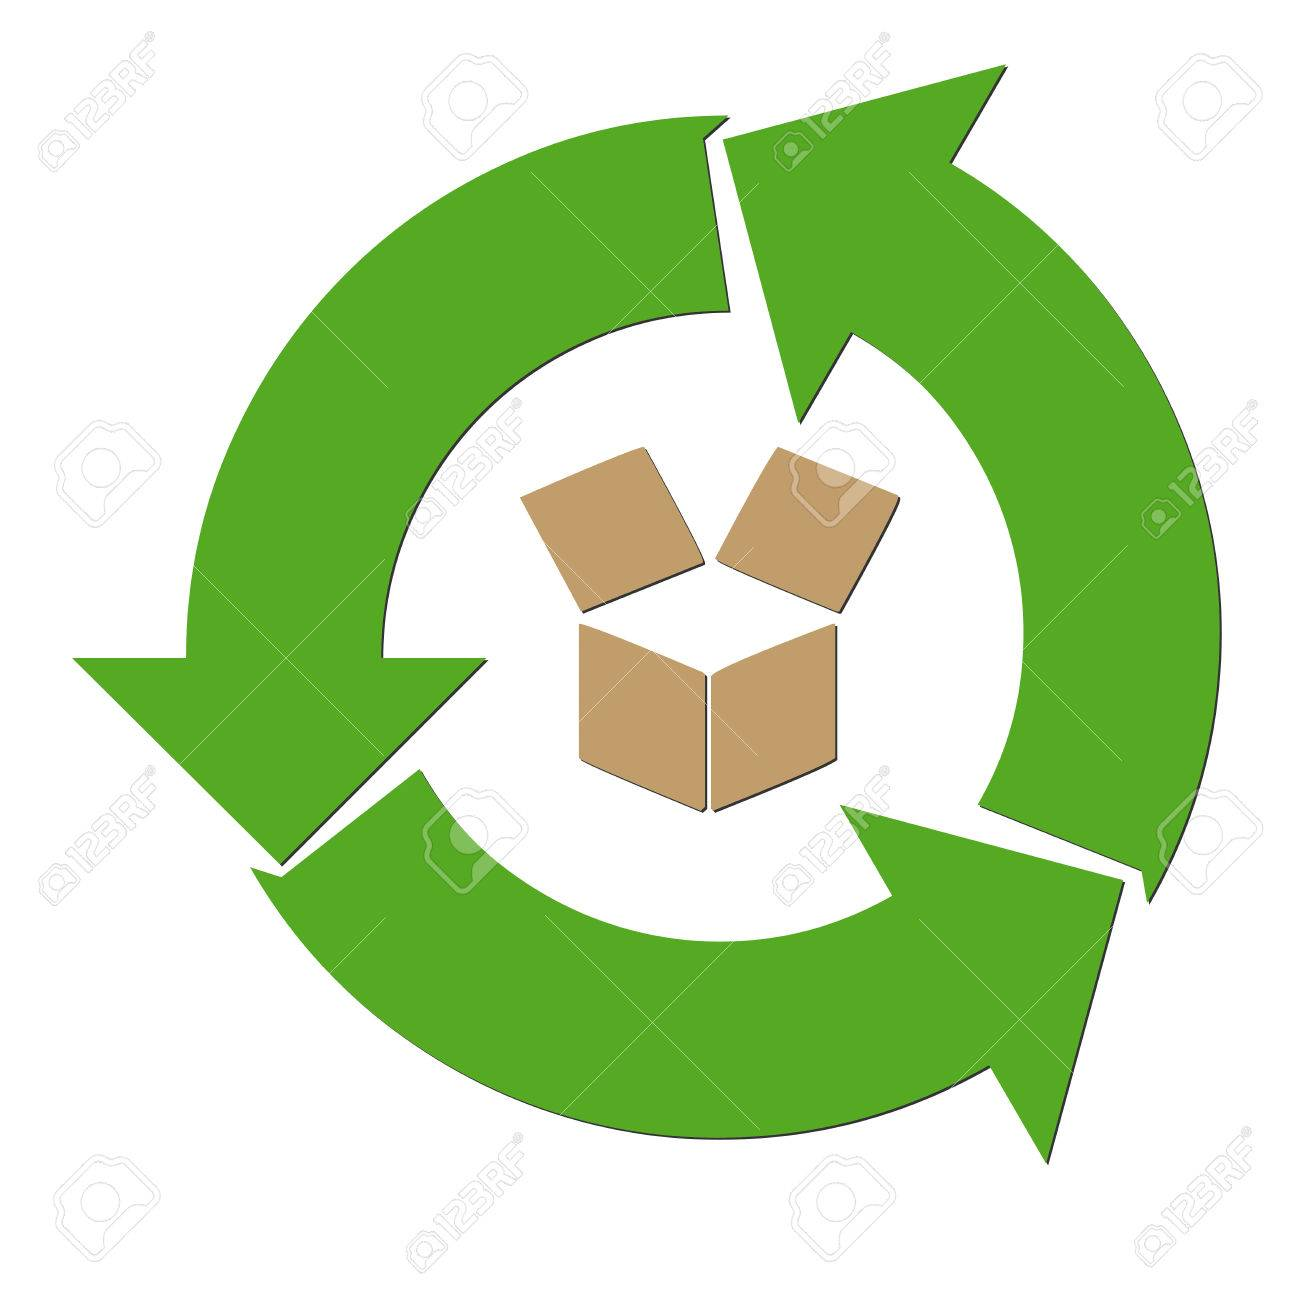 Recycle paper symbol stock photo picture and royalty free image recycle paper symbol stock photo 69904909 buycottarizona